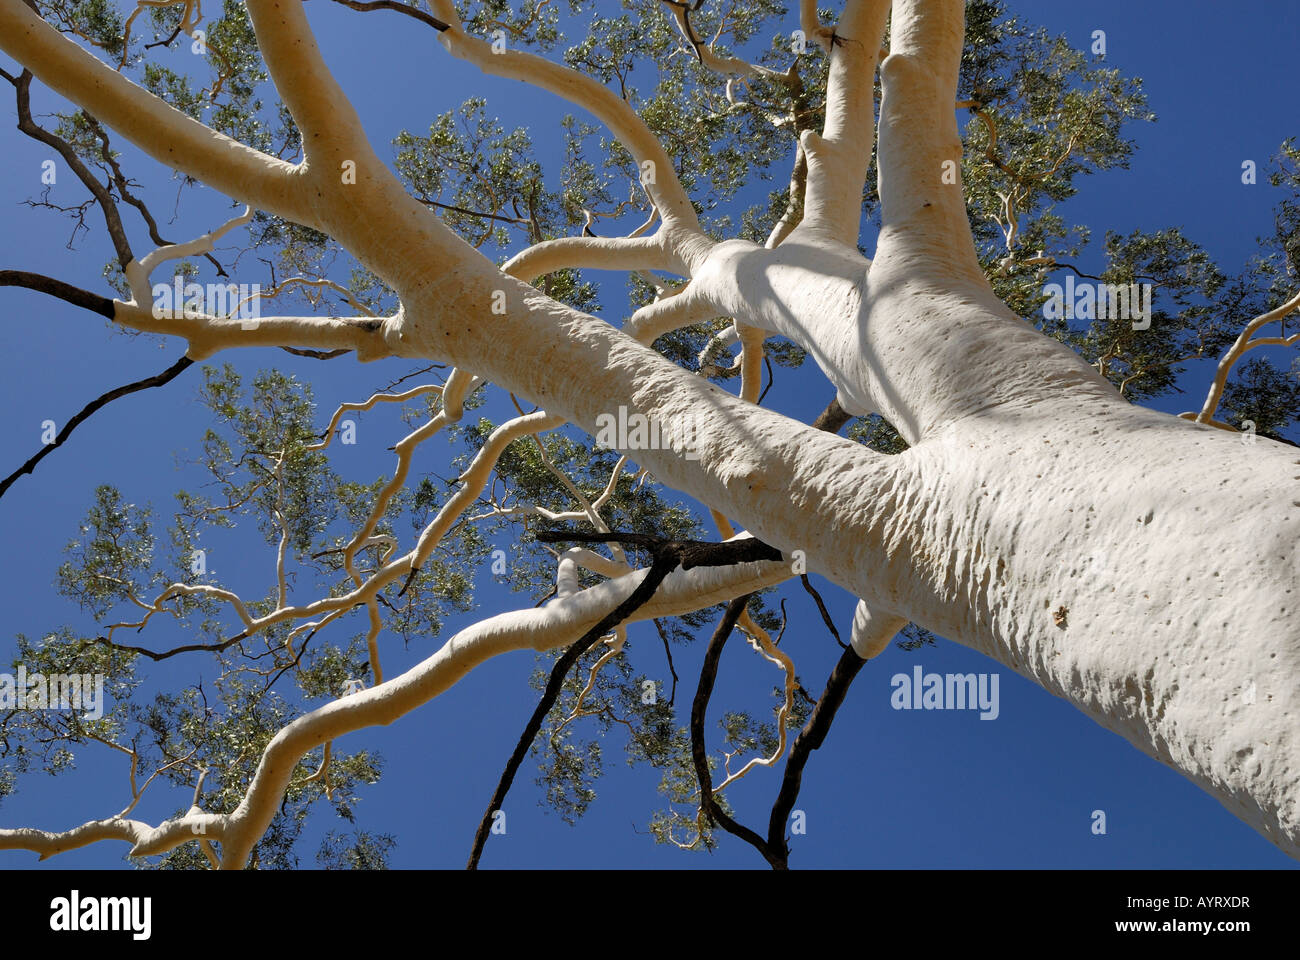 Top of a Ghost Tree (Eucalyptus), East MacDonnell Ranges, Northern Territory, Australia Stock Photo